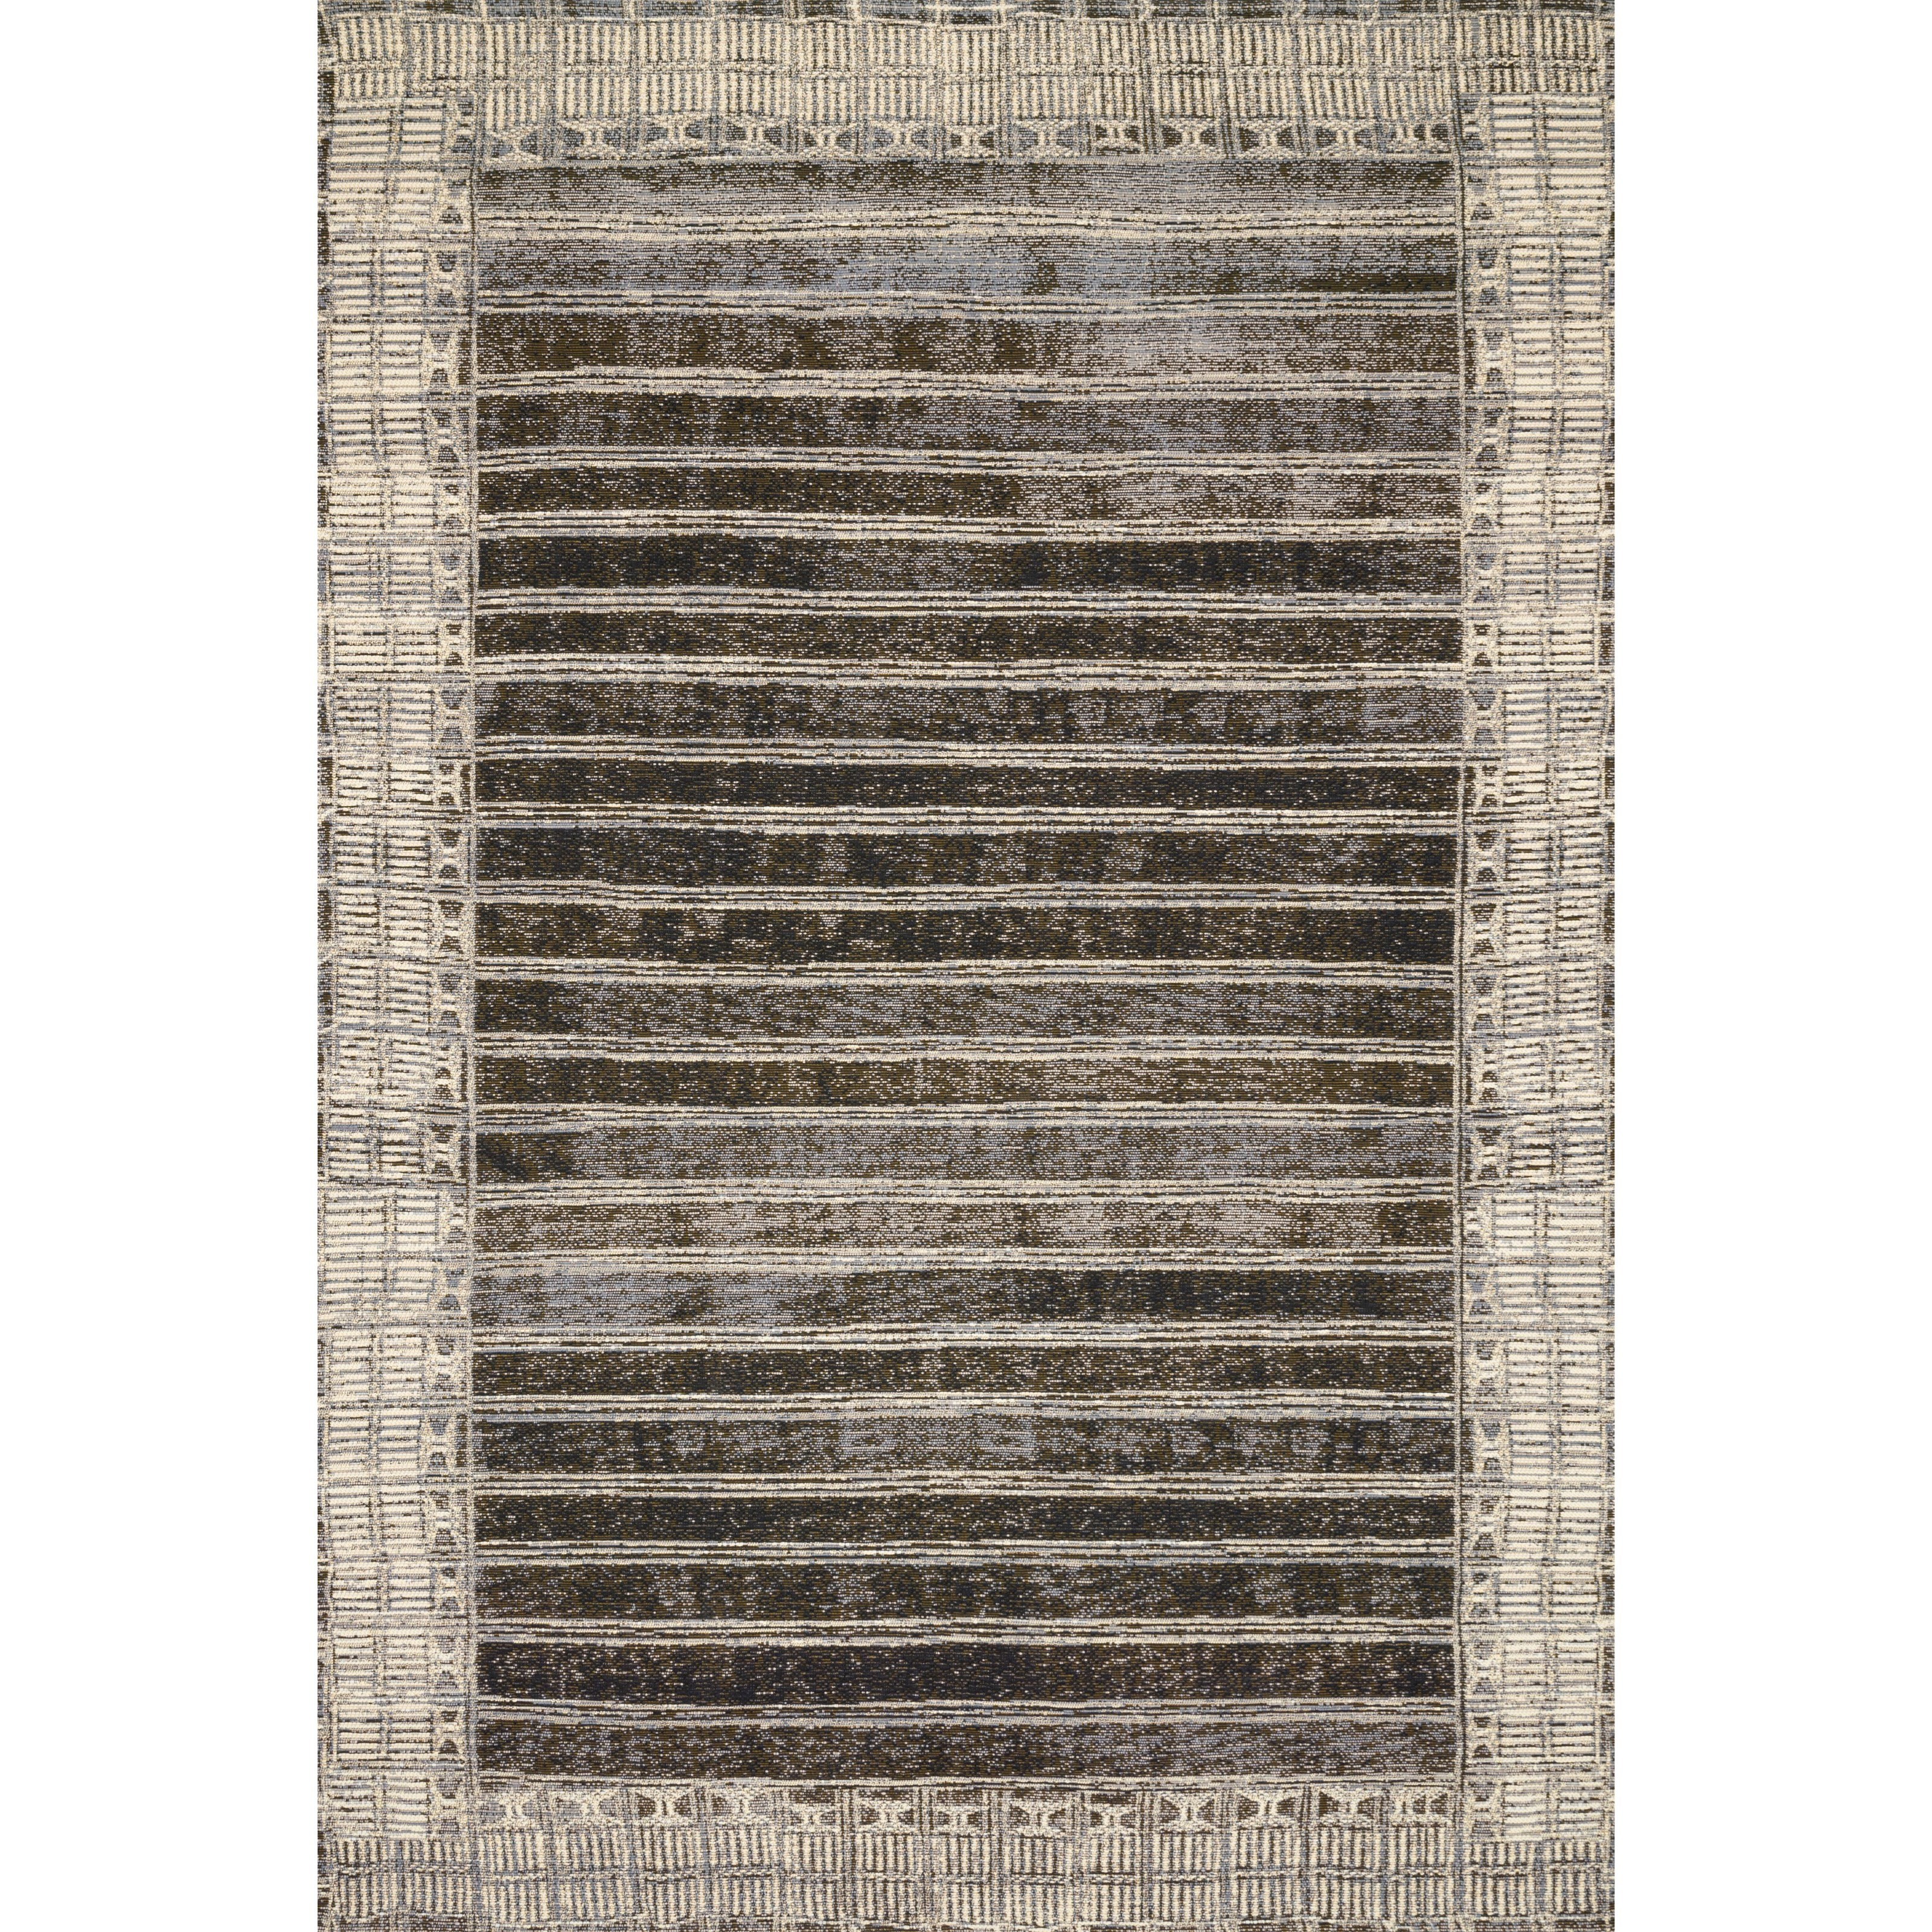 "Mika 2'5"" x 11'2"" Charcoal / Ivory Rug by Loloi Rugs at Pedigo Furniture"